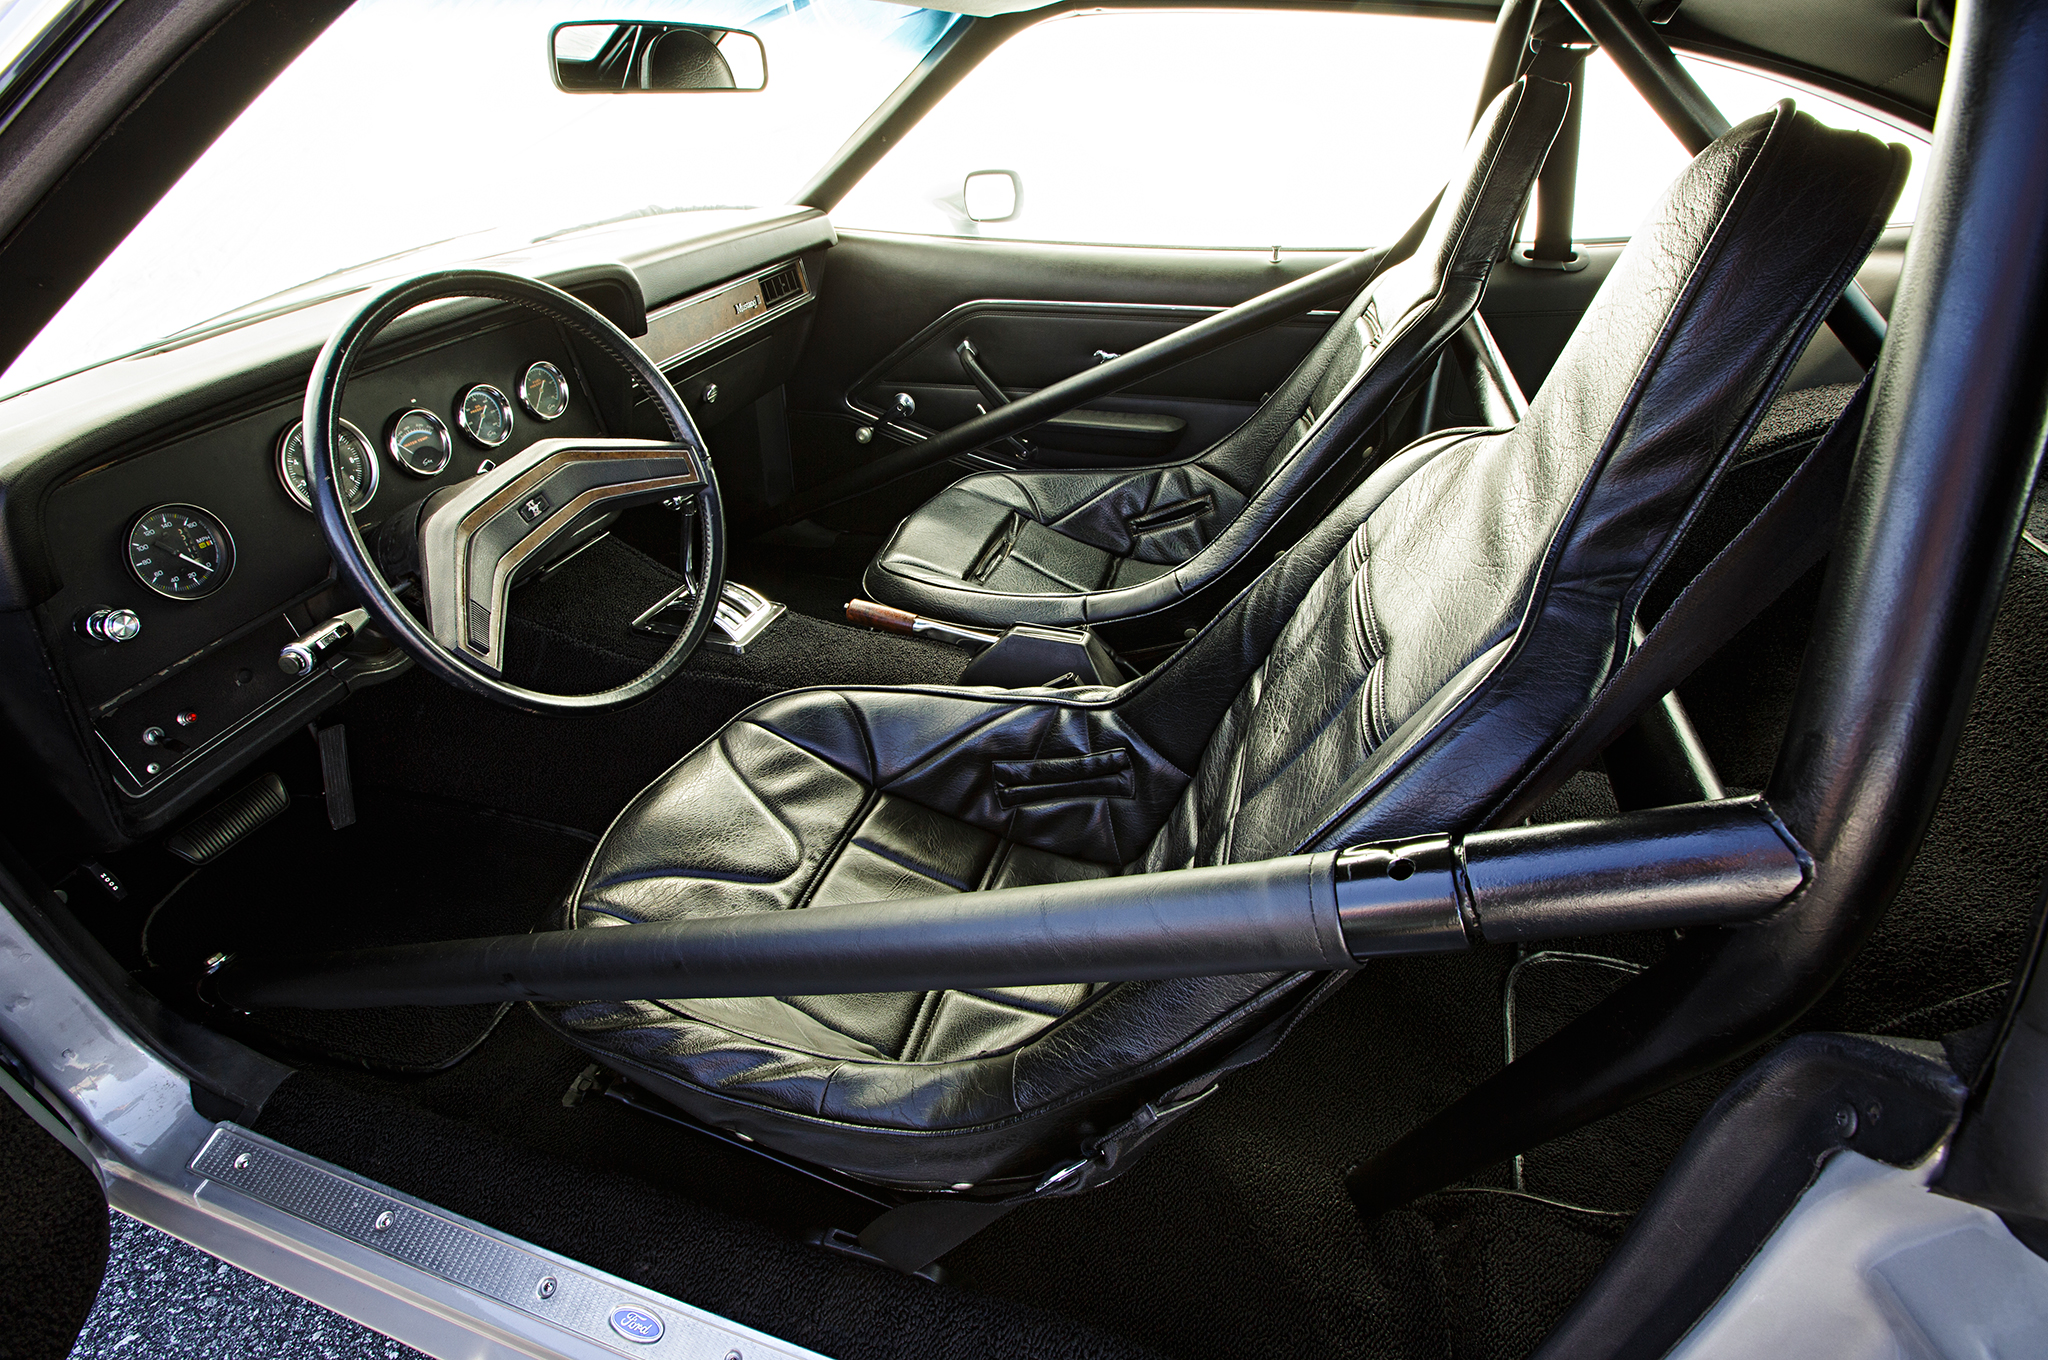 "The interior is completely original, other than carpet and headliner. The seat covers and Don Hardy Race Cars seats were G&R race pieces from their old Pro Stock cars. One of the original seats was shattered, so Tate had fiberglass support ""cups"" fabricated off the one good seat to support the bottoms and a metal plate on top of the broken seat formed the repair. He then injected marine expanding foam to provide internal support. Tate reports that the seat is now ""solid as a rock."""